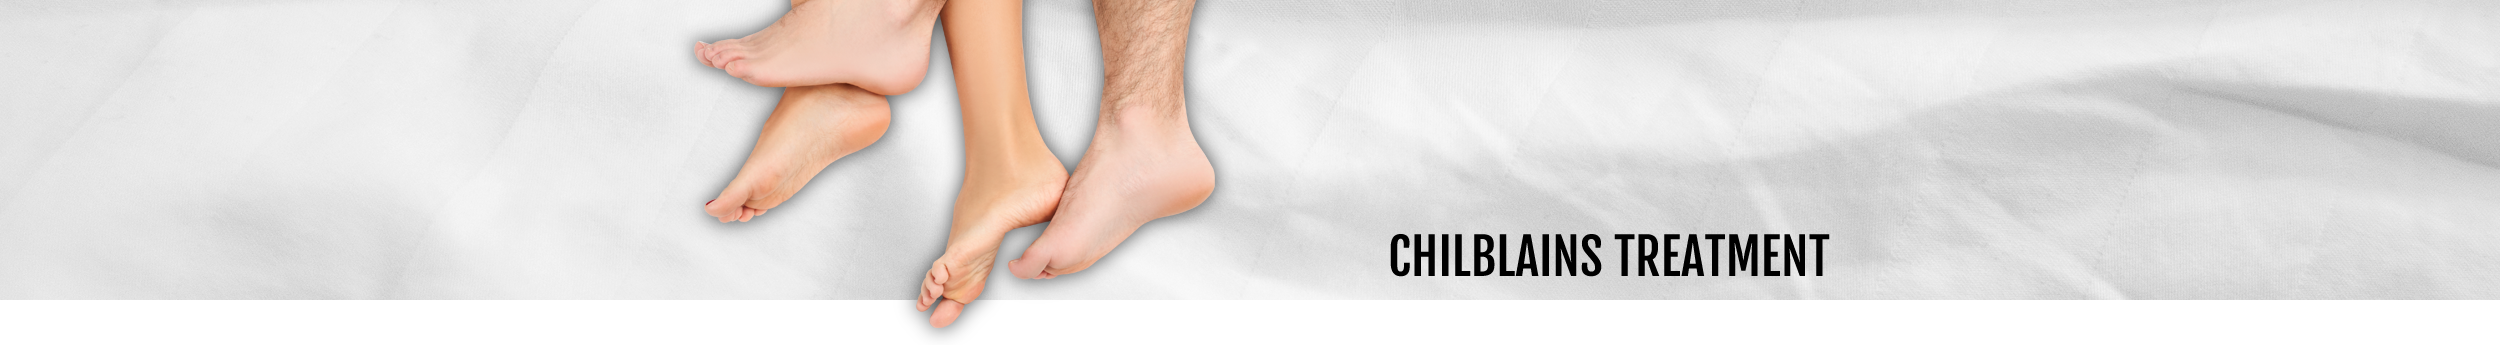 Chilblains treatment header for the Walk IN Foot Clinic in central London